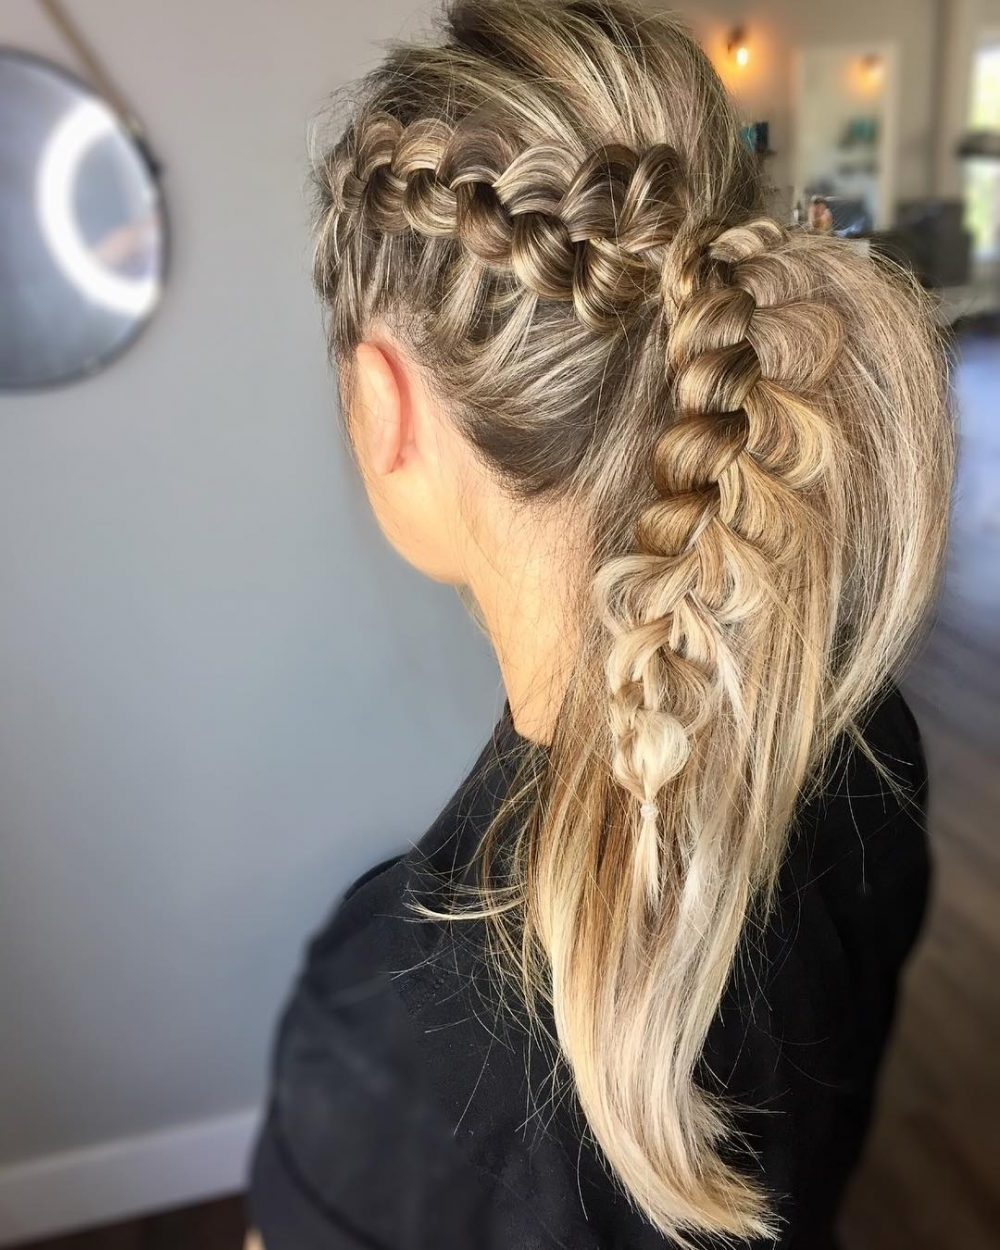 38 Ridiculously Cute Hairstyles For Long Hair (Popular In 2018) In Most Up To Date Bouffant Ponytail Hairstyles For Long Hair (View 4 of 20)